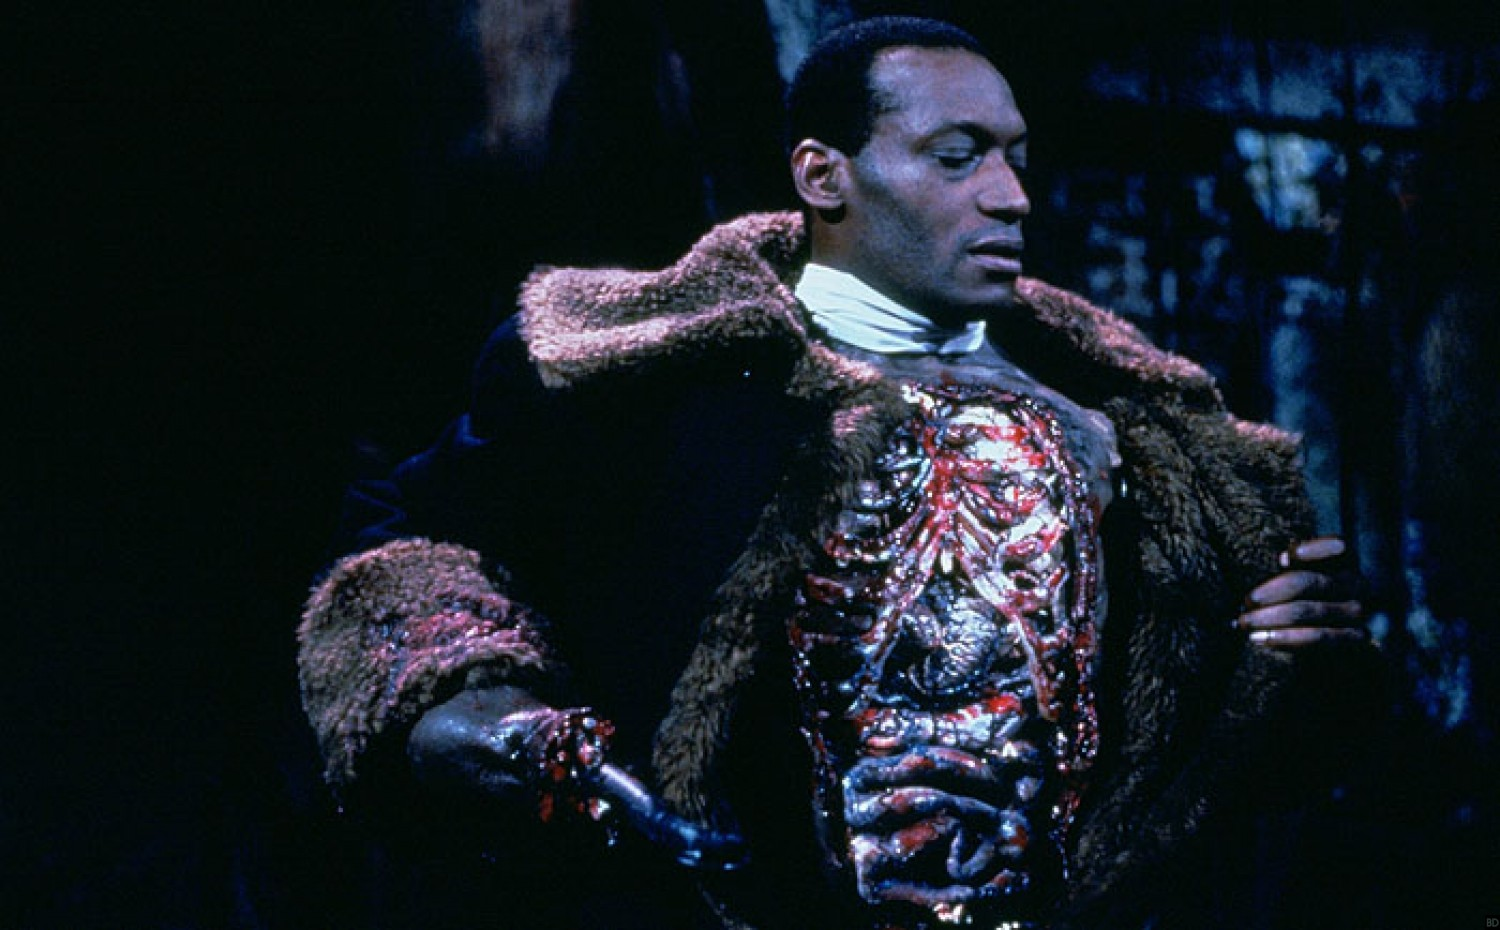 Candyman IV': Tony Todd Revisits the Winter-Set Sequel That Was Never Made [Phantom Limbs] - Bloody Disgusting